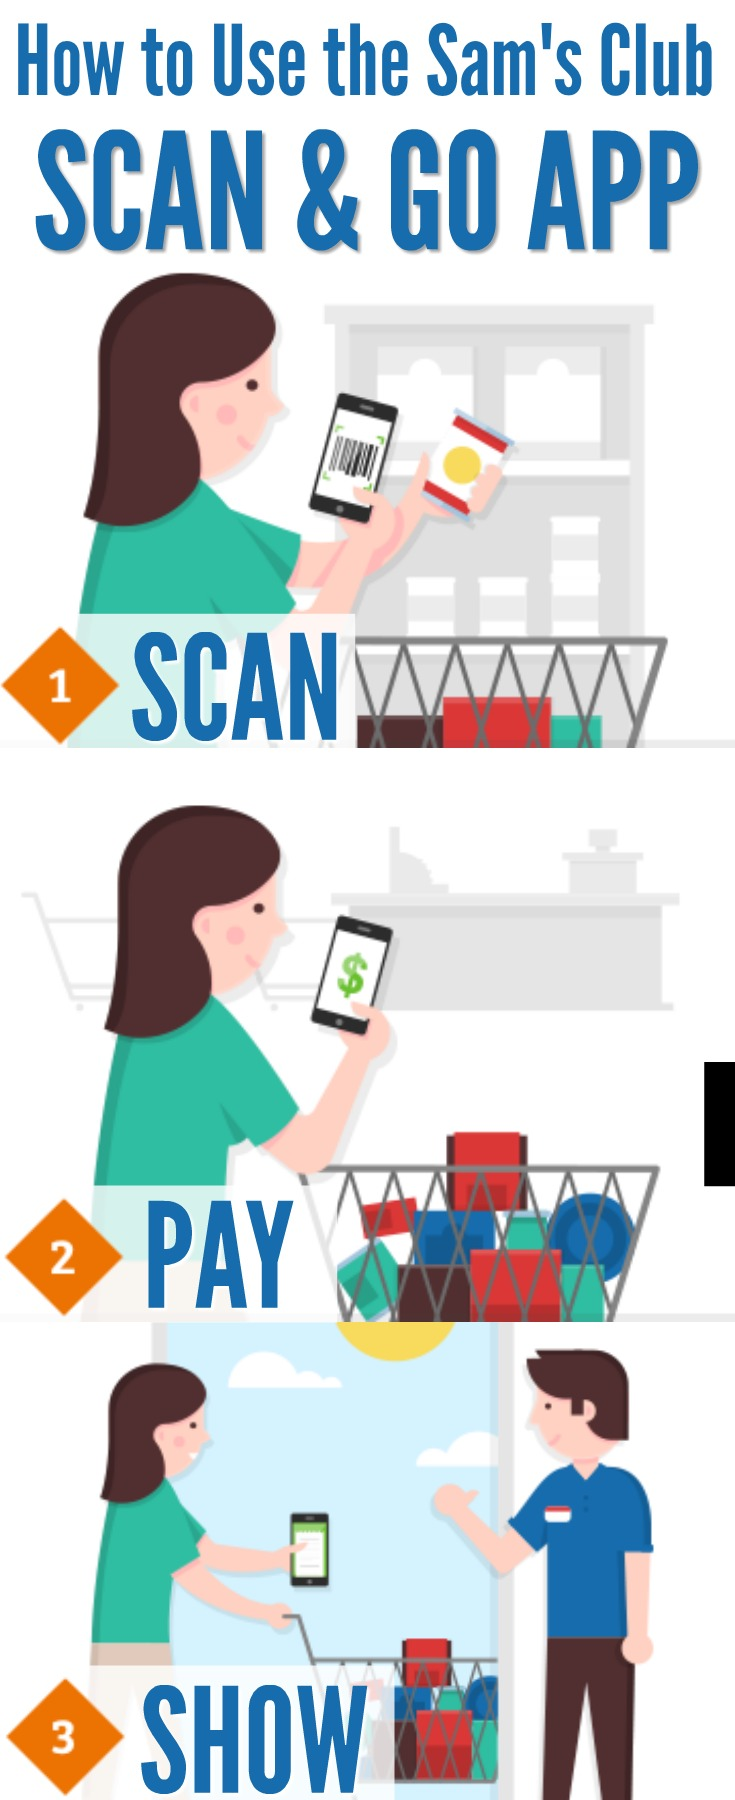 Sam's Club Scan & Go App